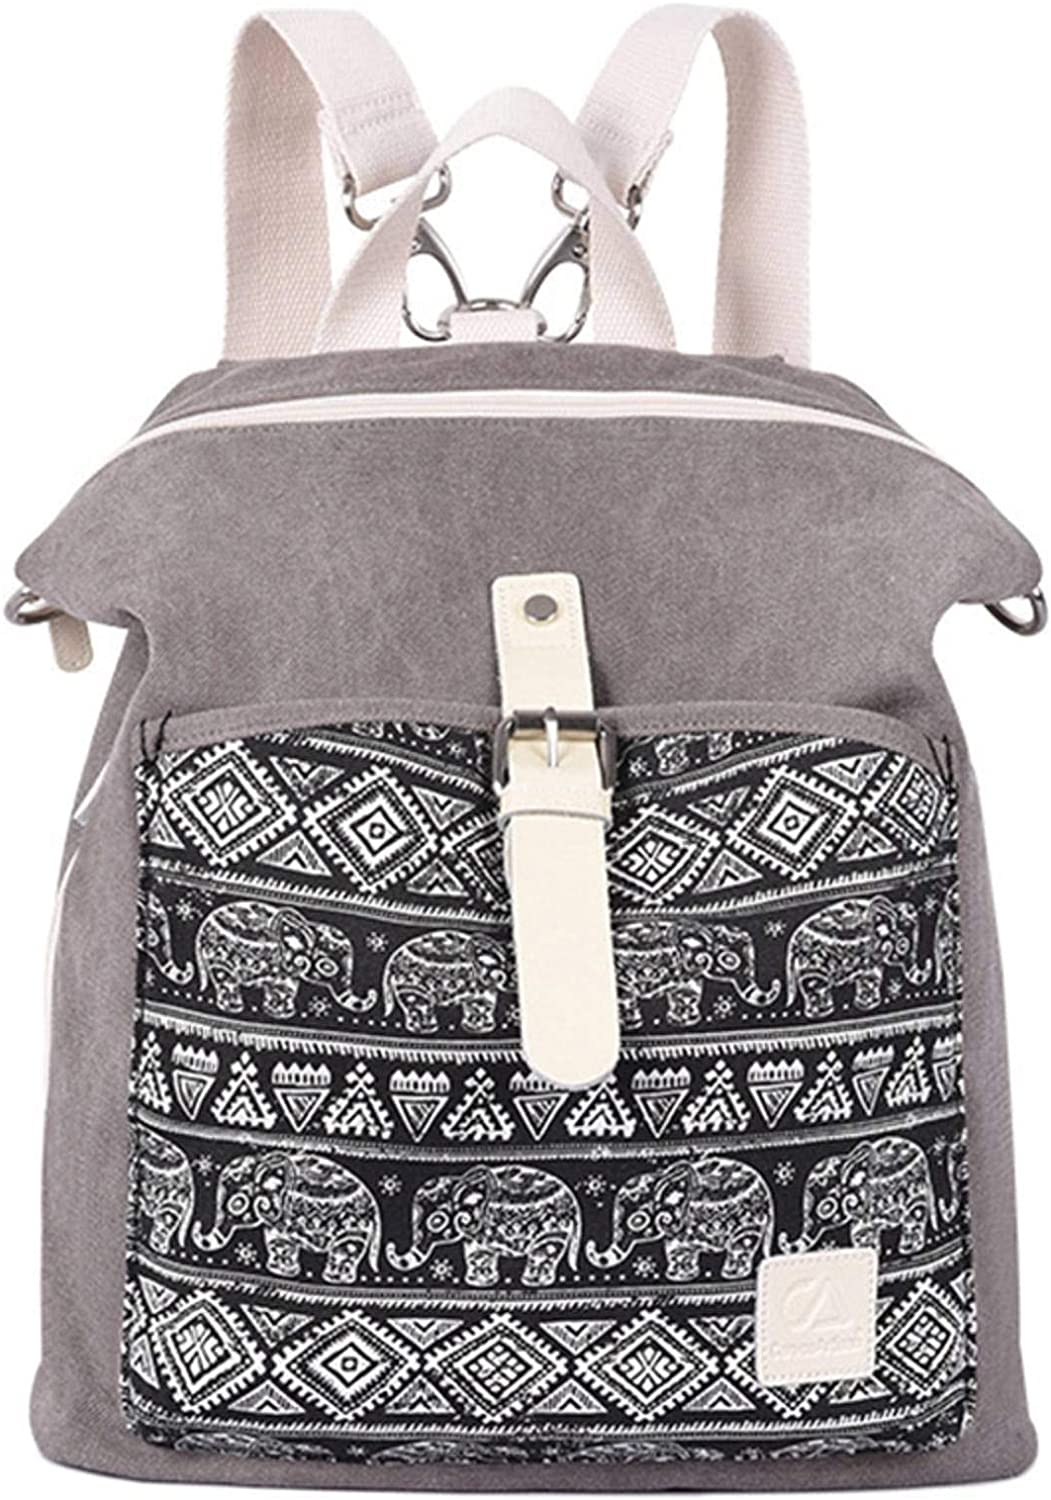 NC Woman Canvas Backpack Ethnic Style Flower Embroidery Girl School Bag Fashion Simple Lady Travel Bag